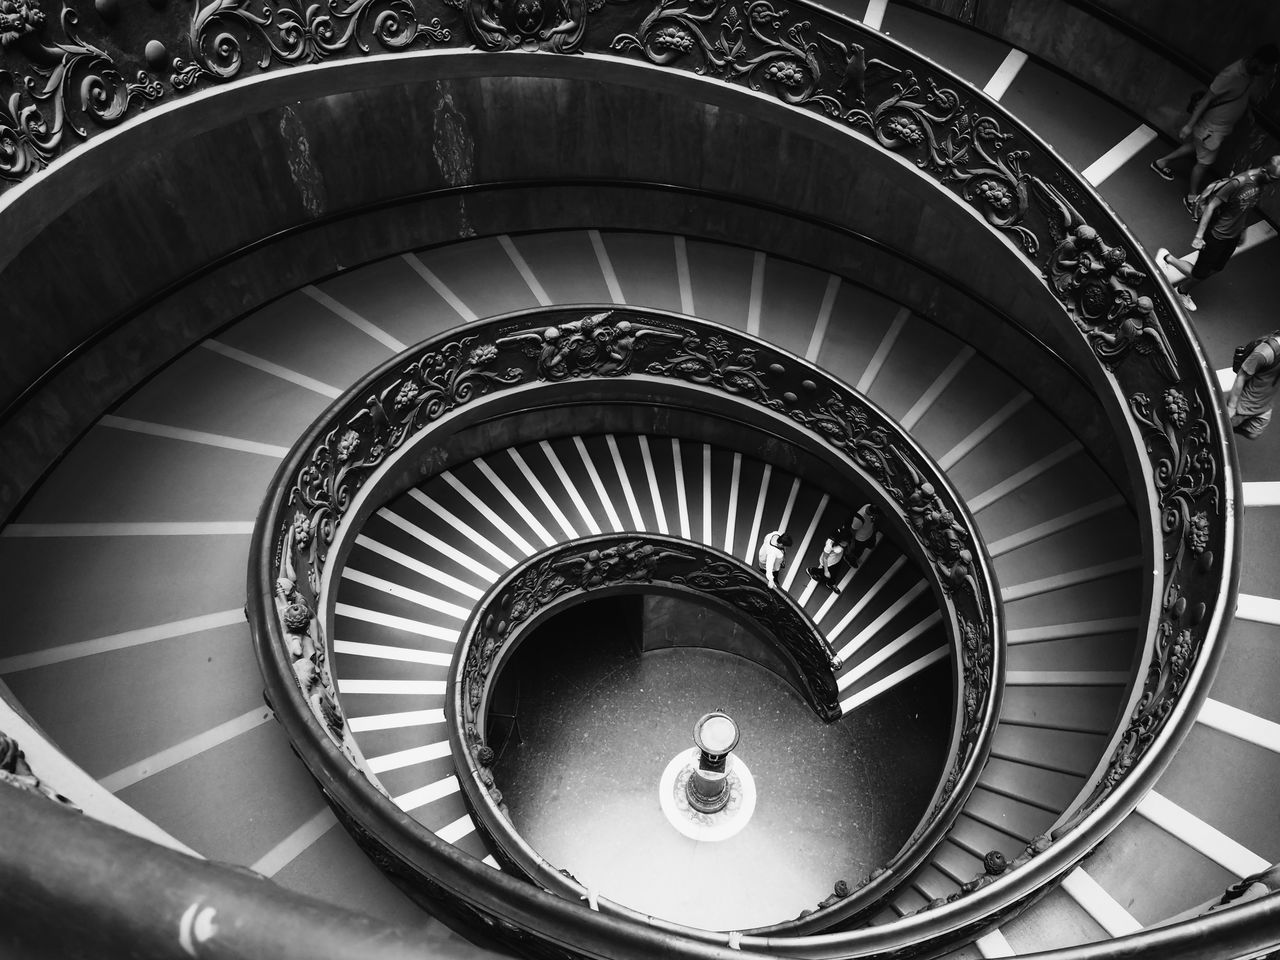 staircase, steps and staircases, spiral, architecture, steps, railing, built structure, spiral stairs, stairs, high angle view, hand rail, one person, day, indoors, people